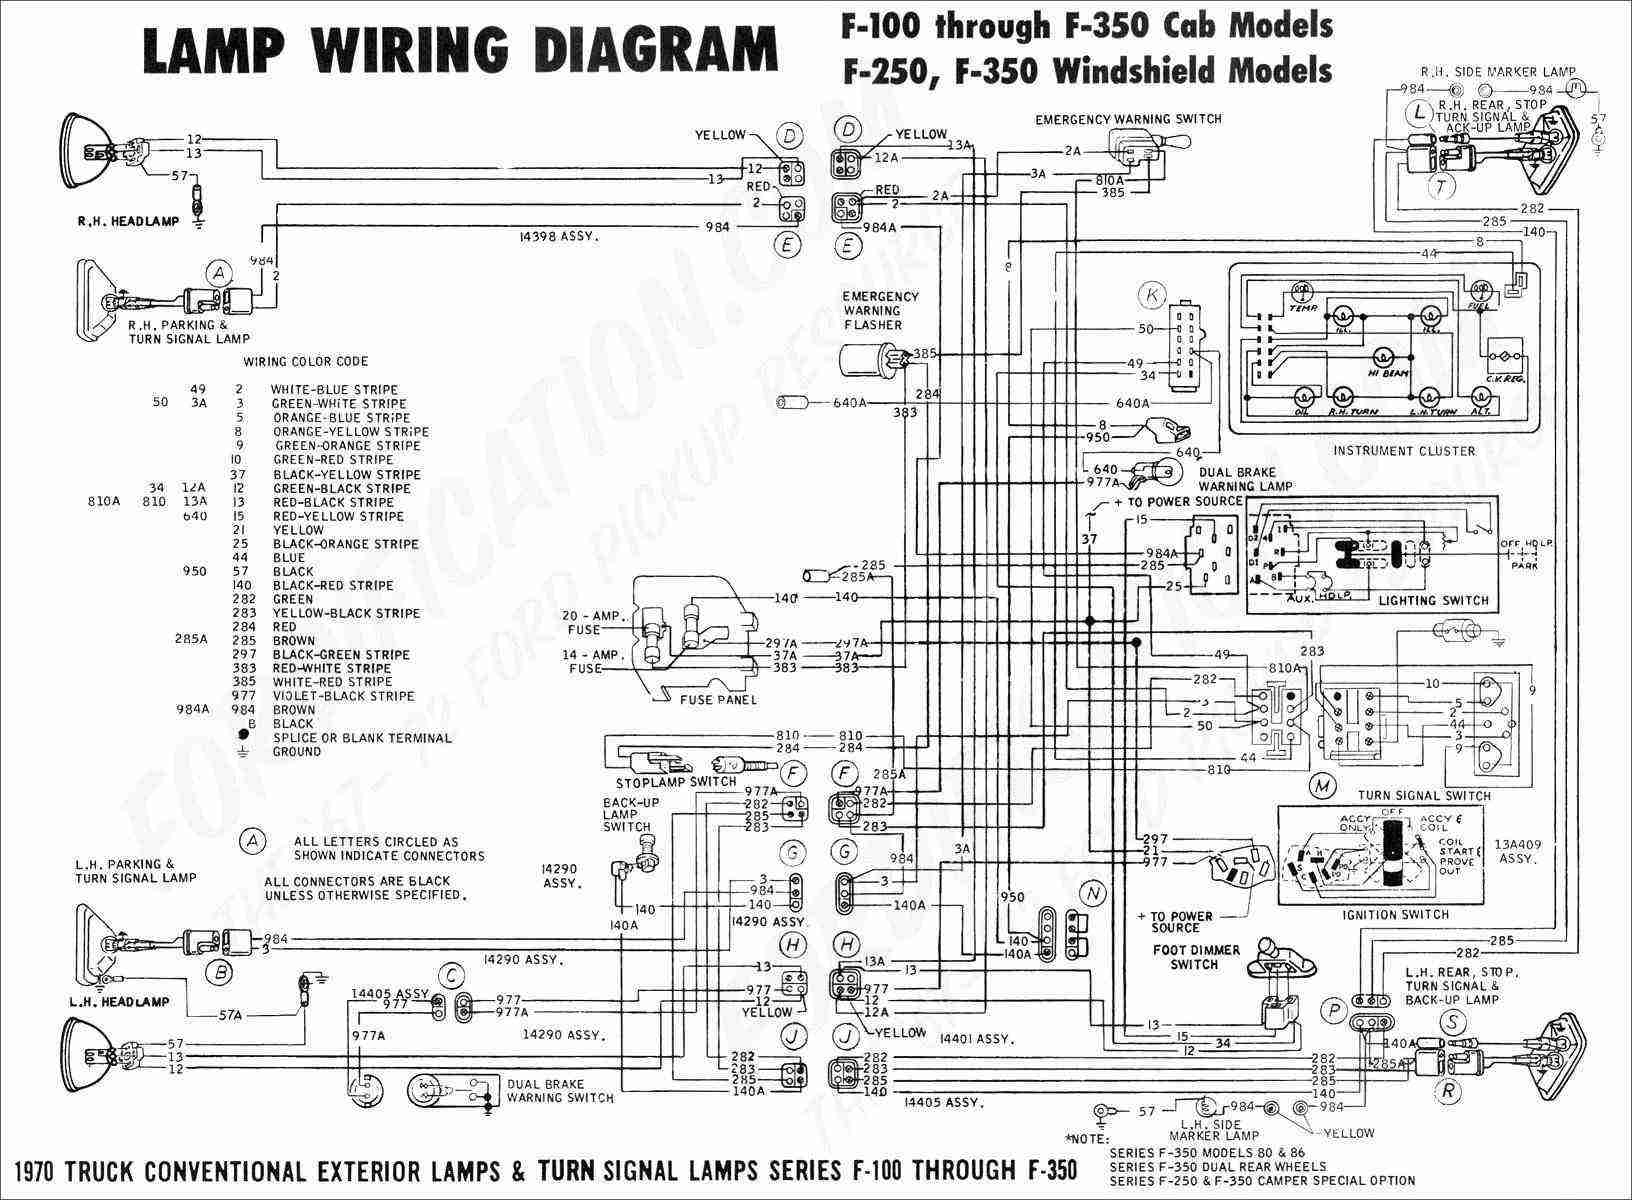 2006 dodge durango trailer wiring diagram detailed data wiring diagram2006 dodge durango trailer wiring diagram wiring library diagram co dodge durango electrical diagram 2006 dodge durango trailer wiring diagram